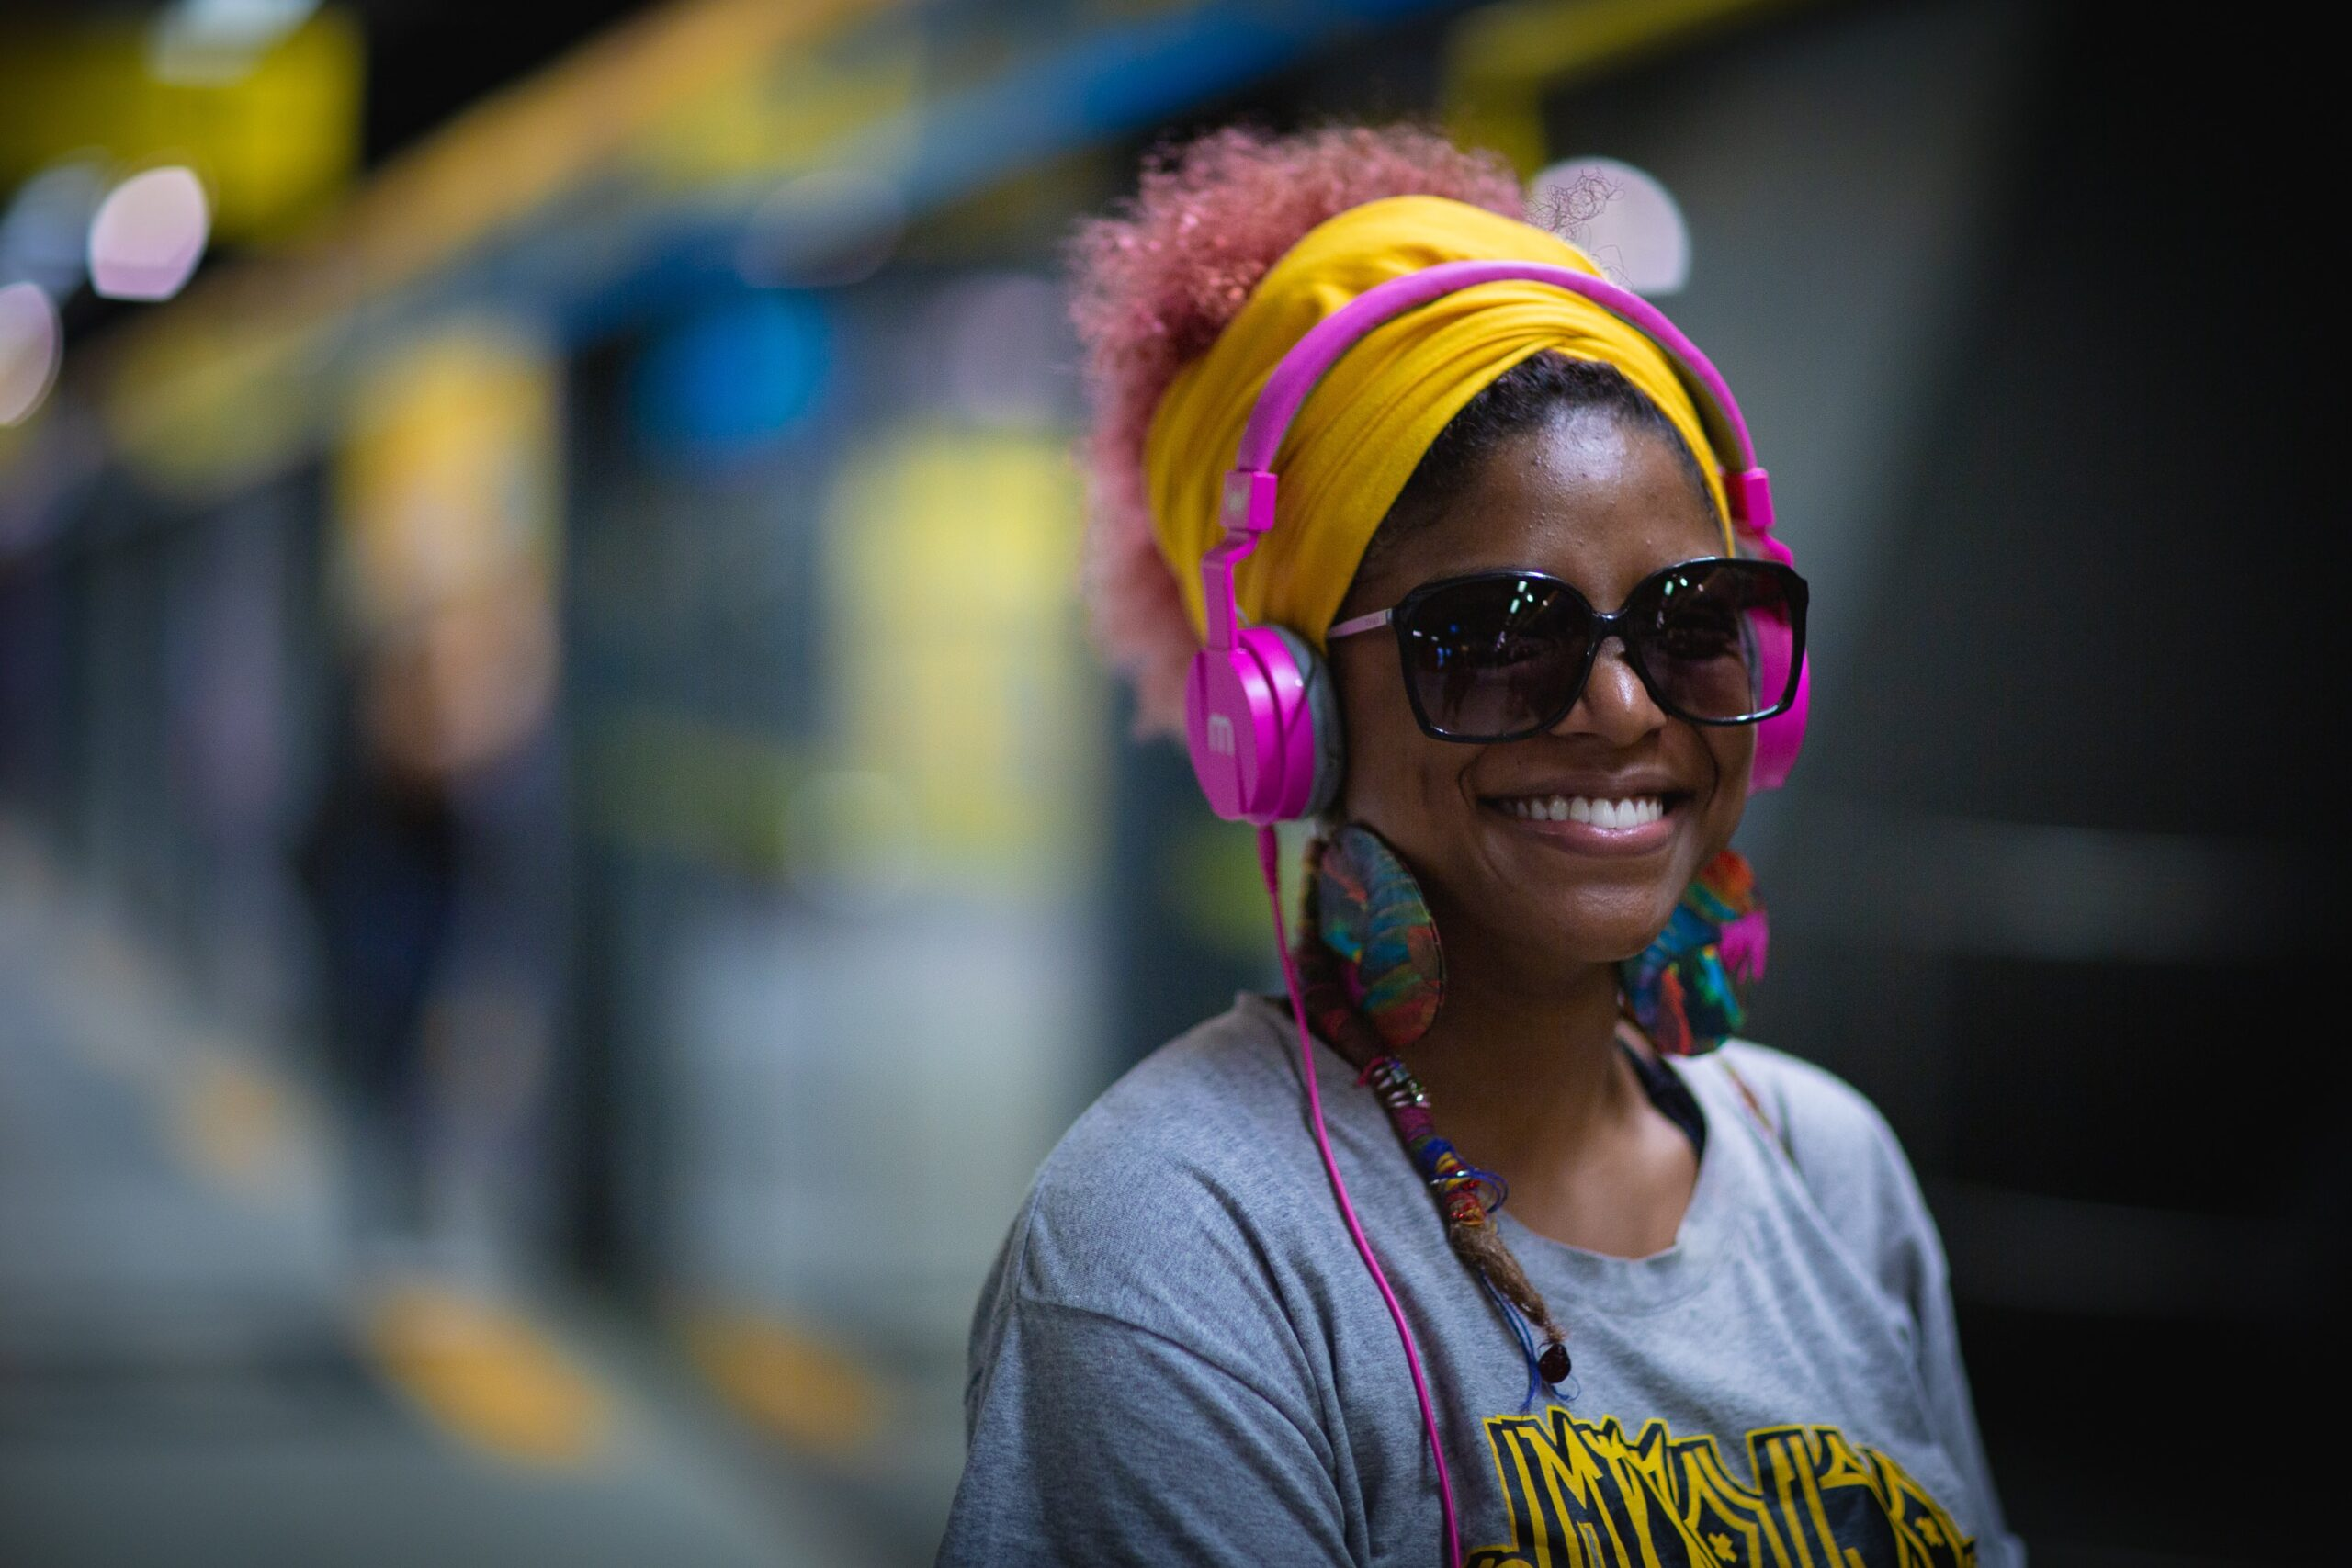 A black woman with pink earphones on a street